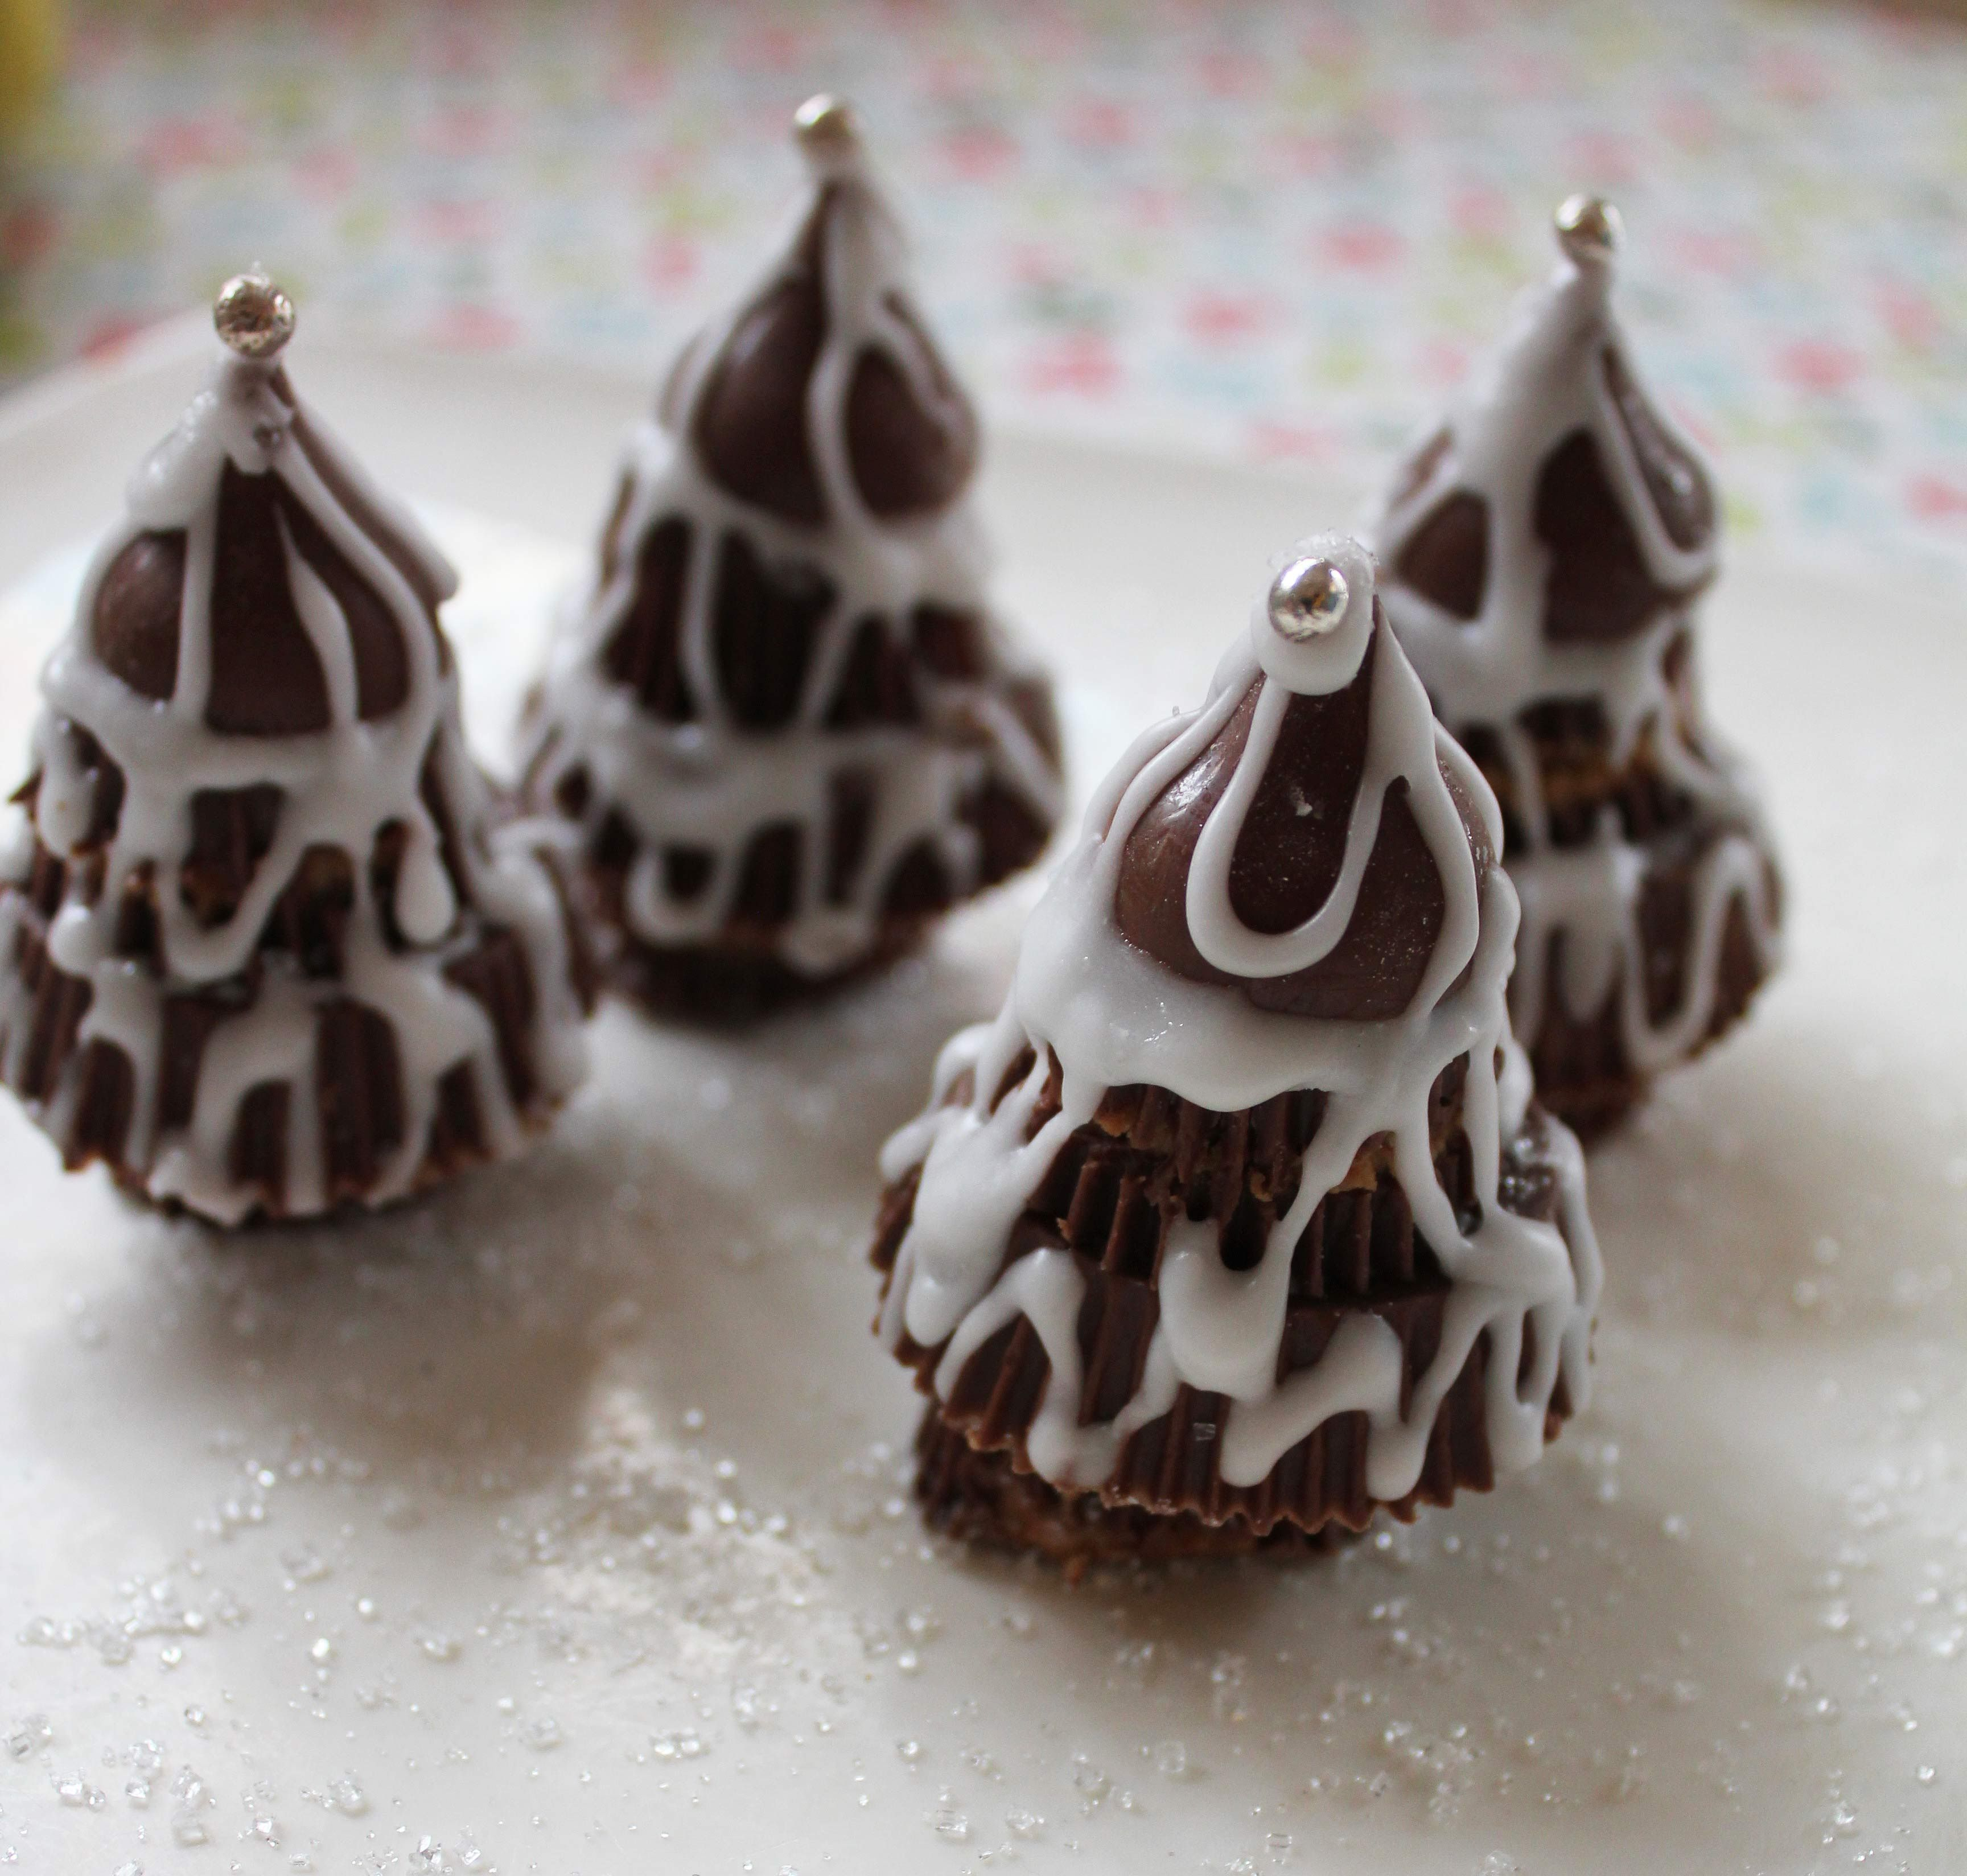 Mary Nersessian – Frosty peanut butter cup Christmas trees ...